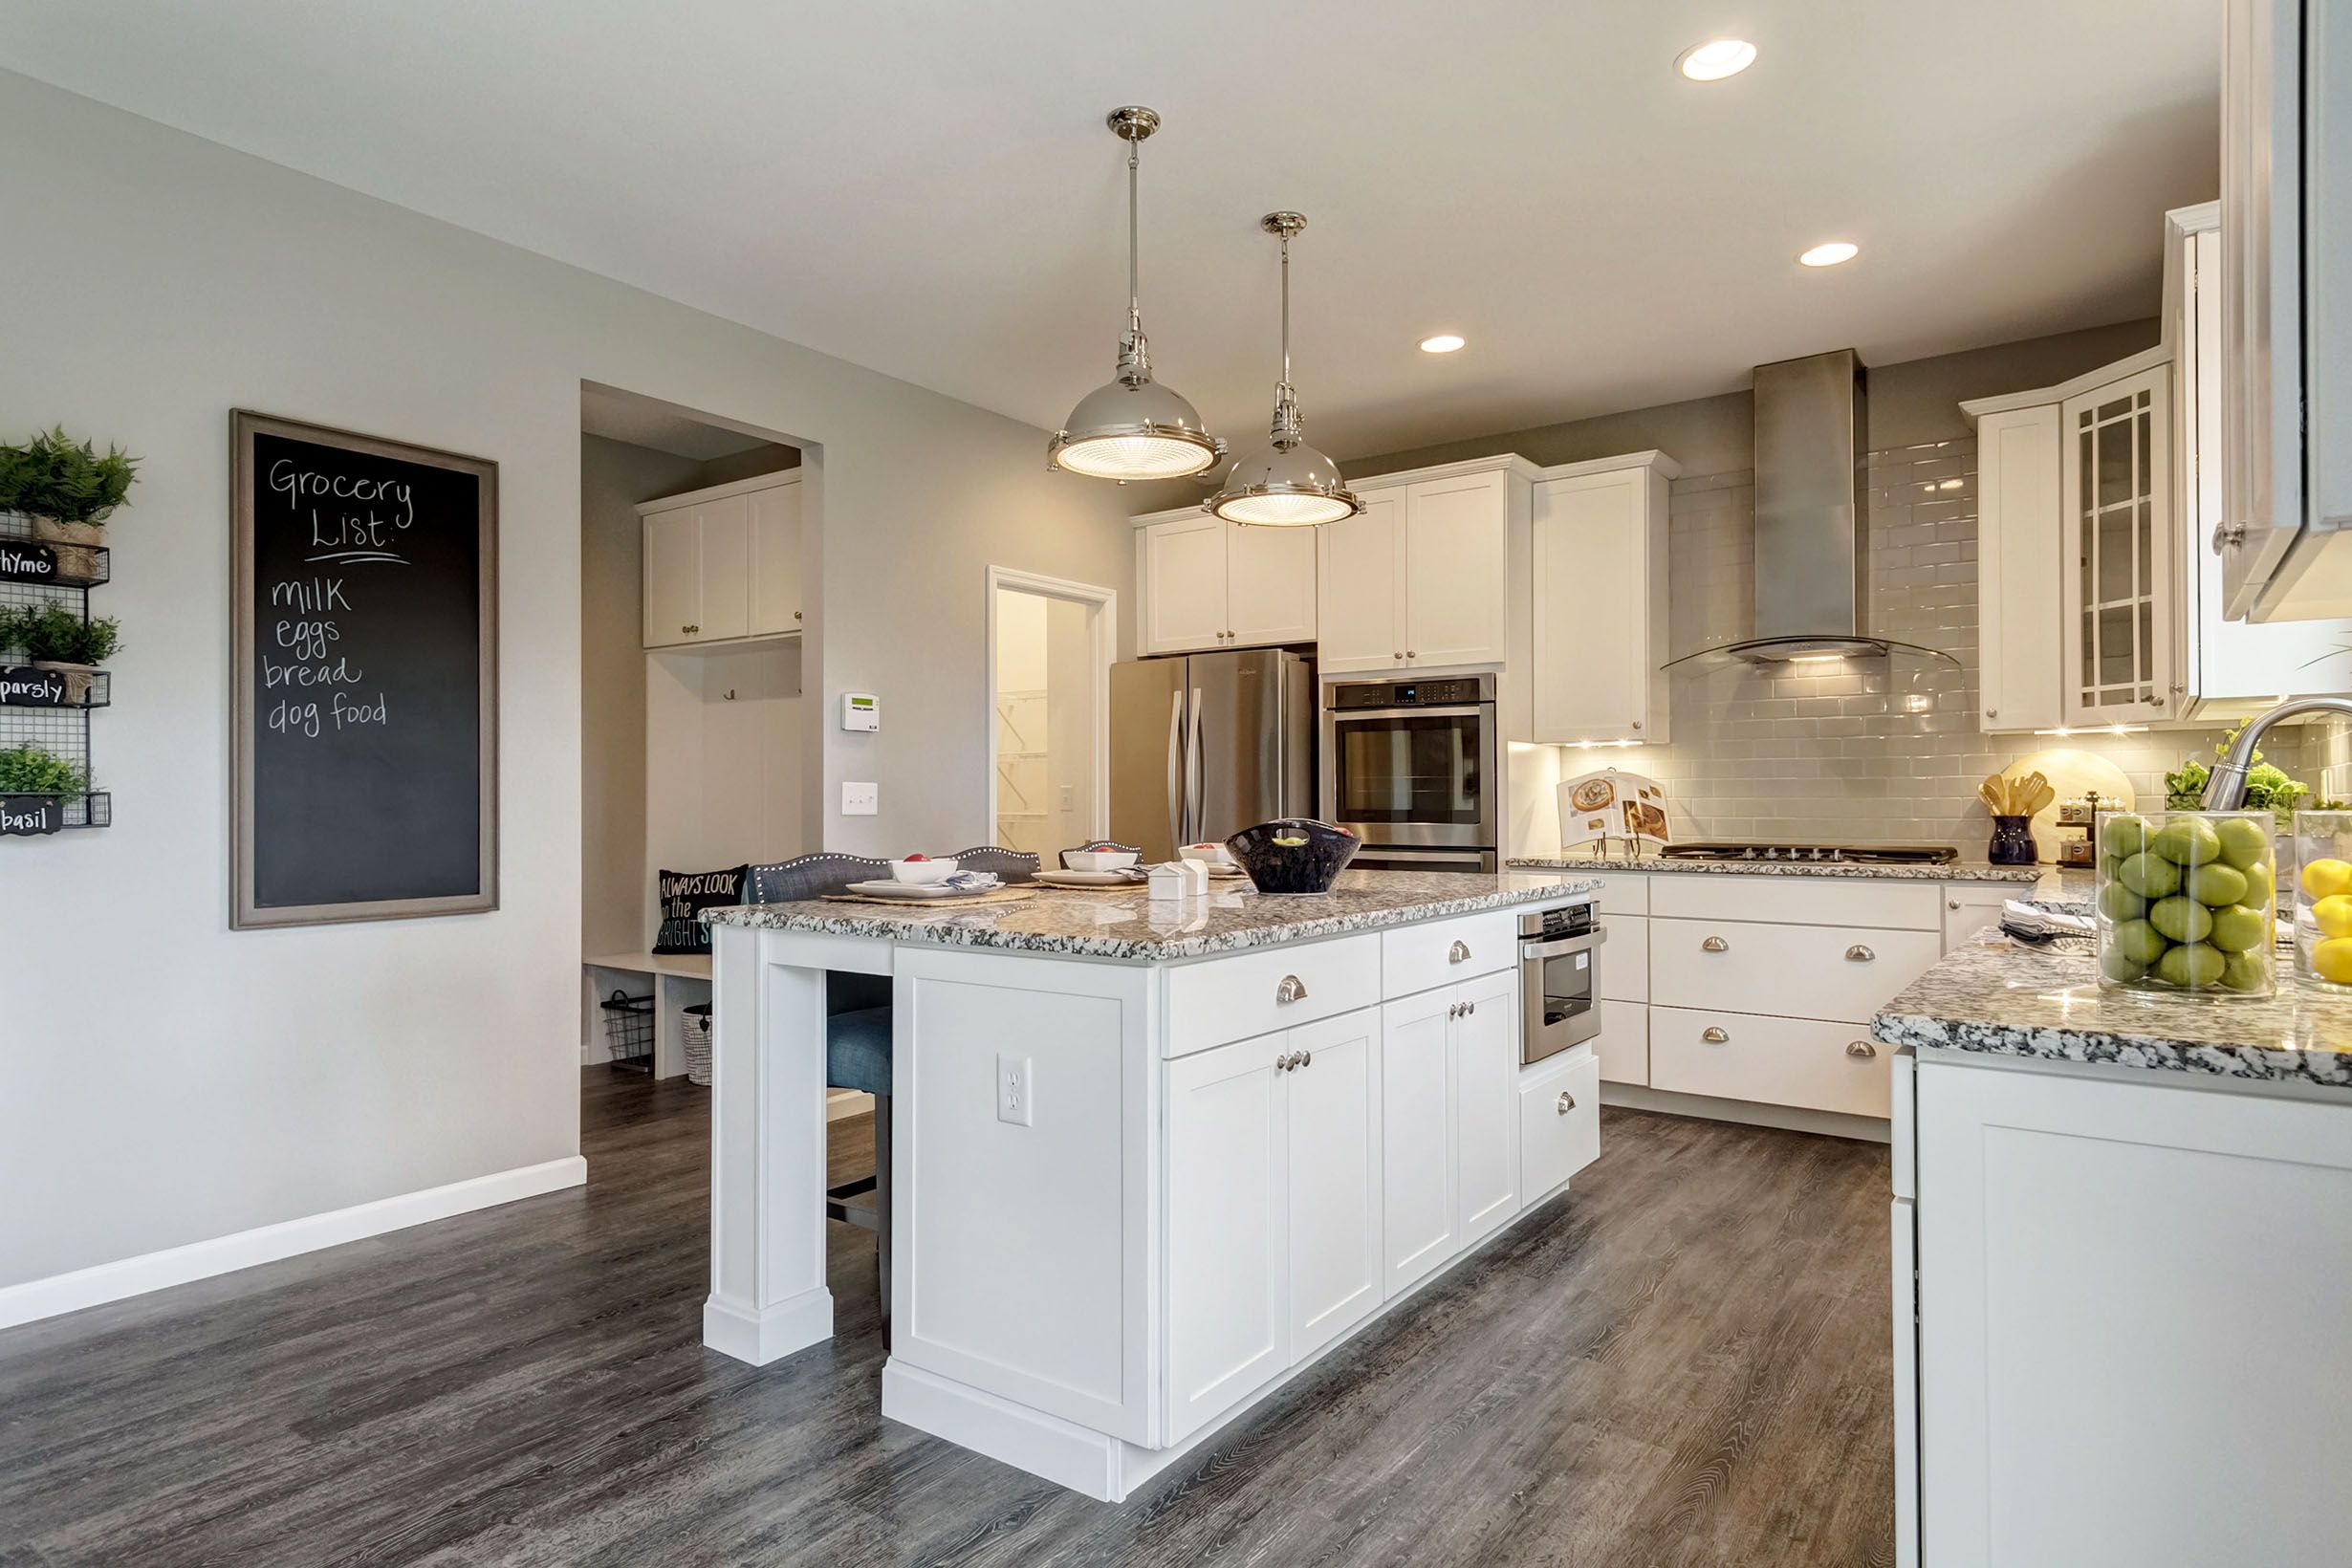 Dover X Brookside Manor Kitchen Island Building A House New Home Builders New Home Construction